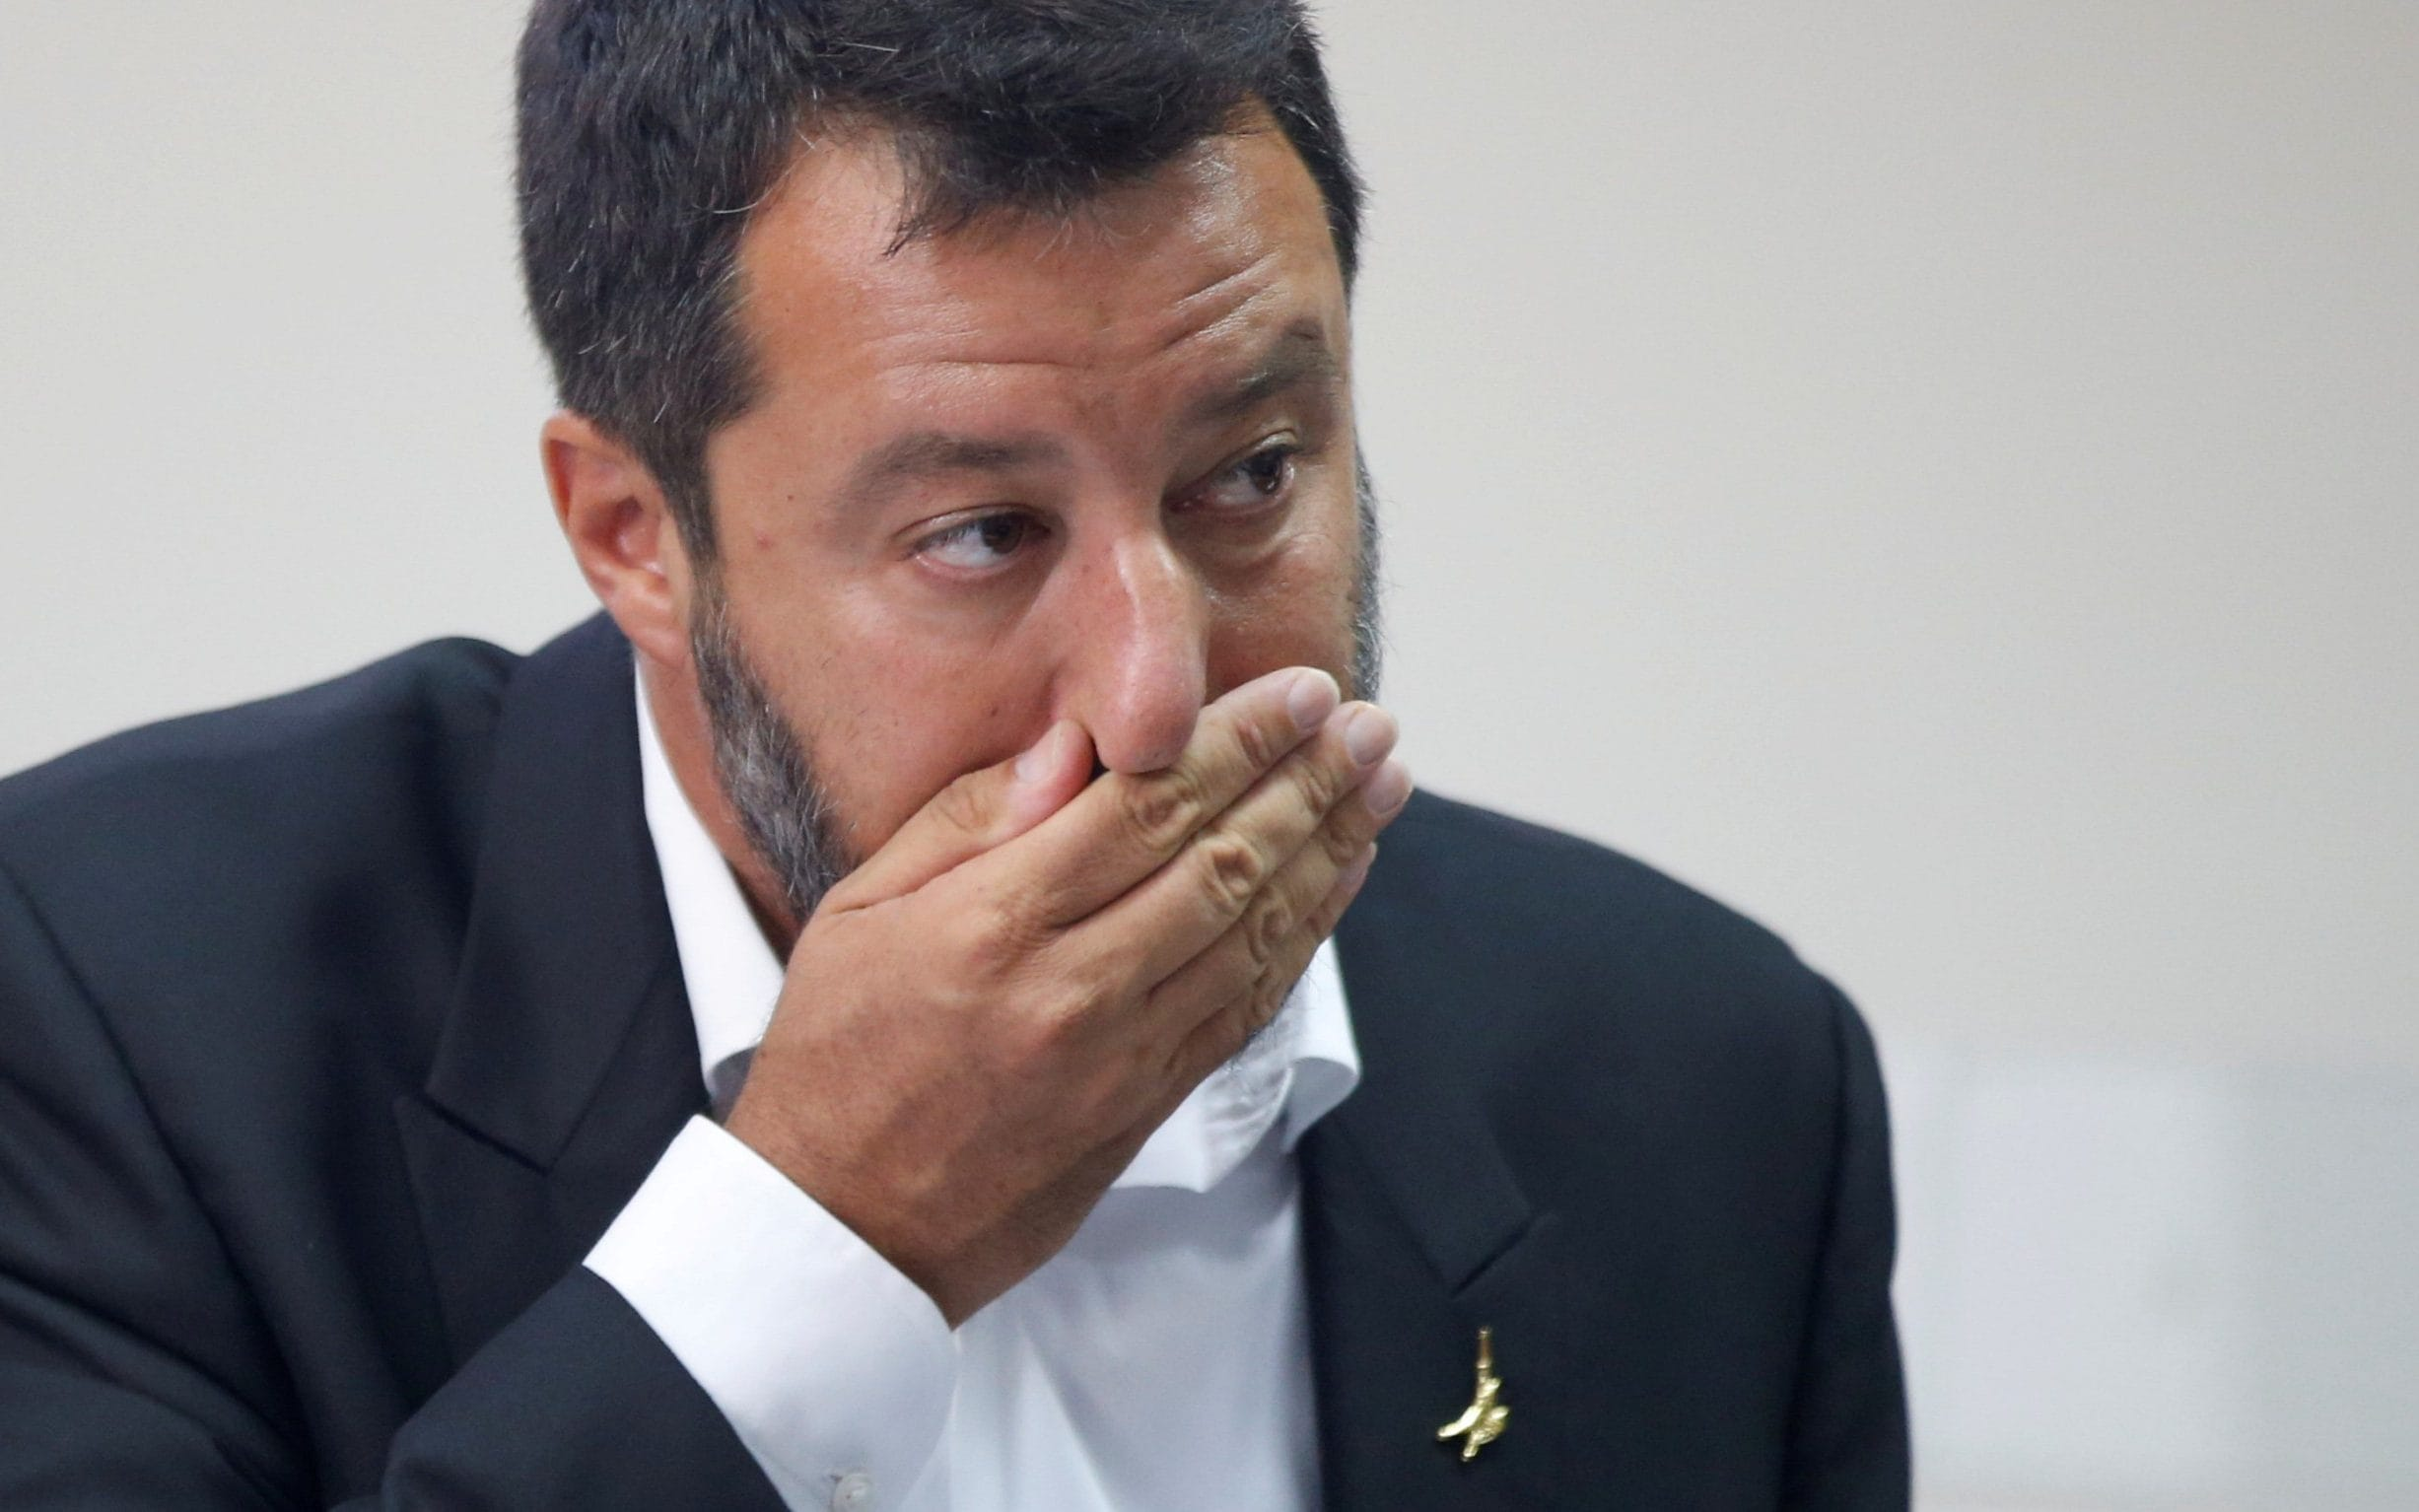 Matteo Salvini to join protest against Italys new government as it moves to undo hardline policies